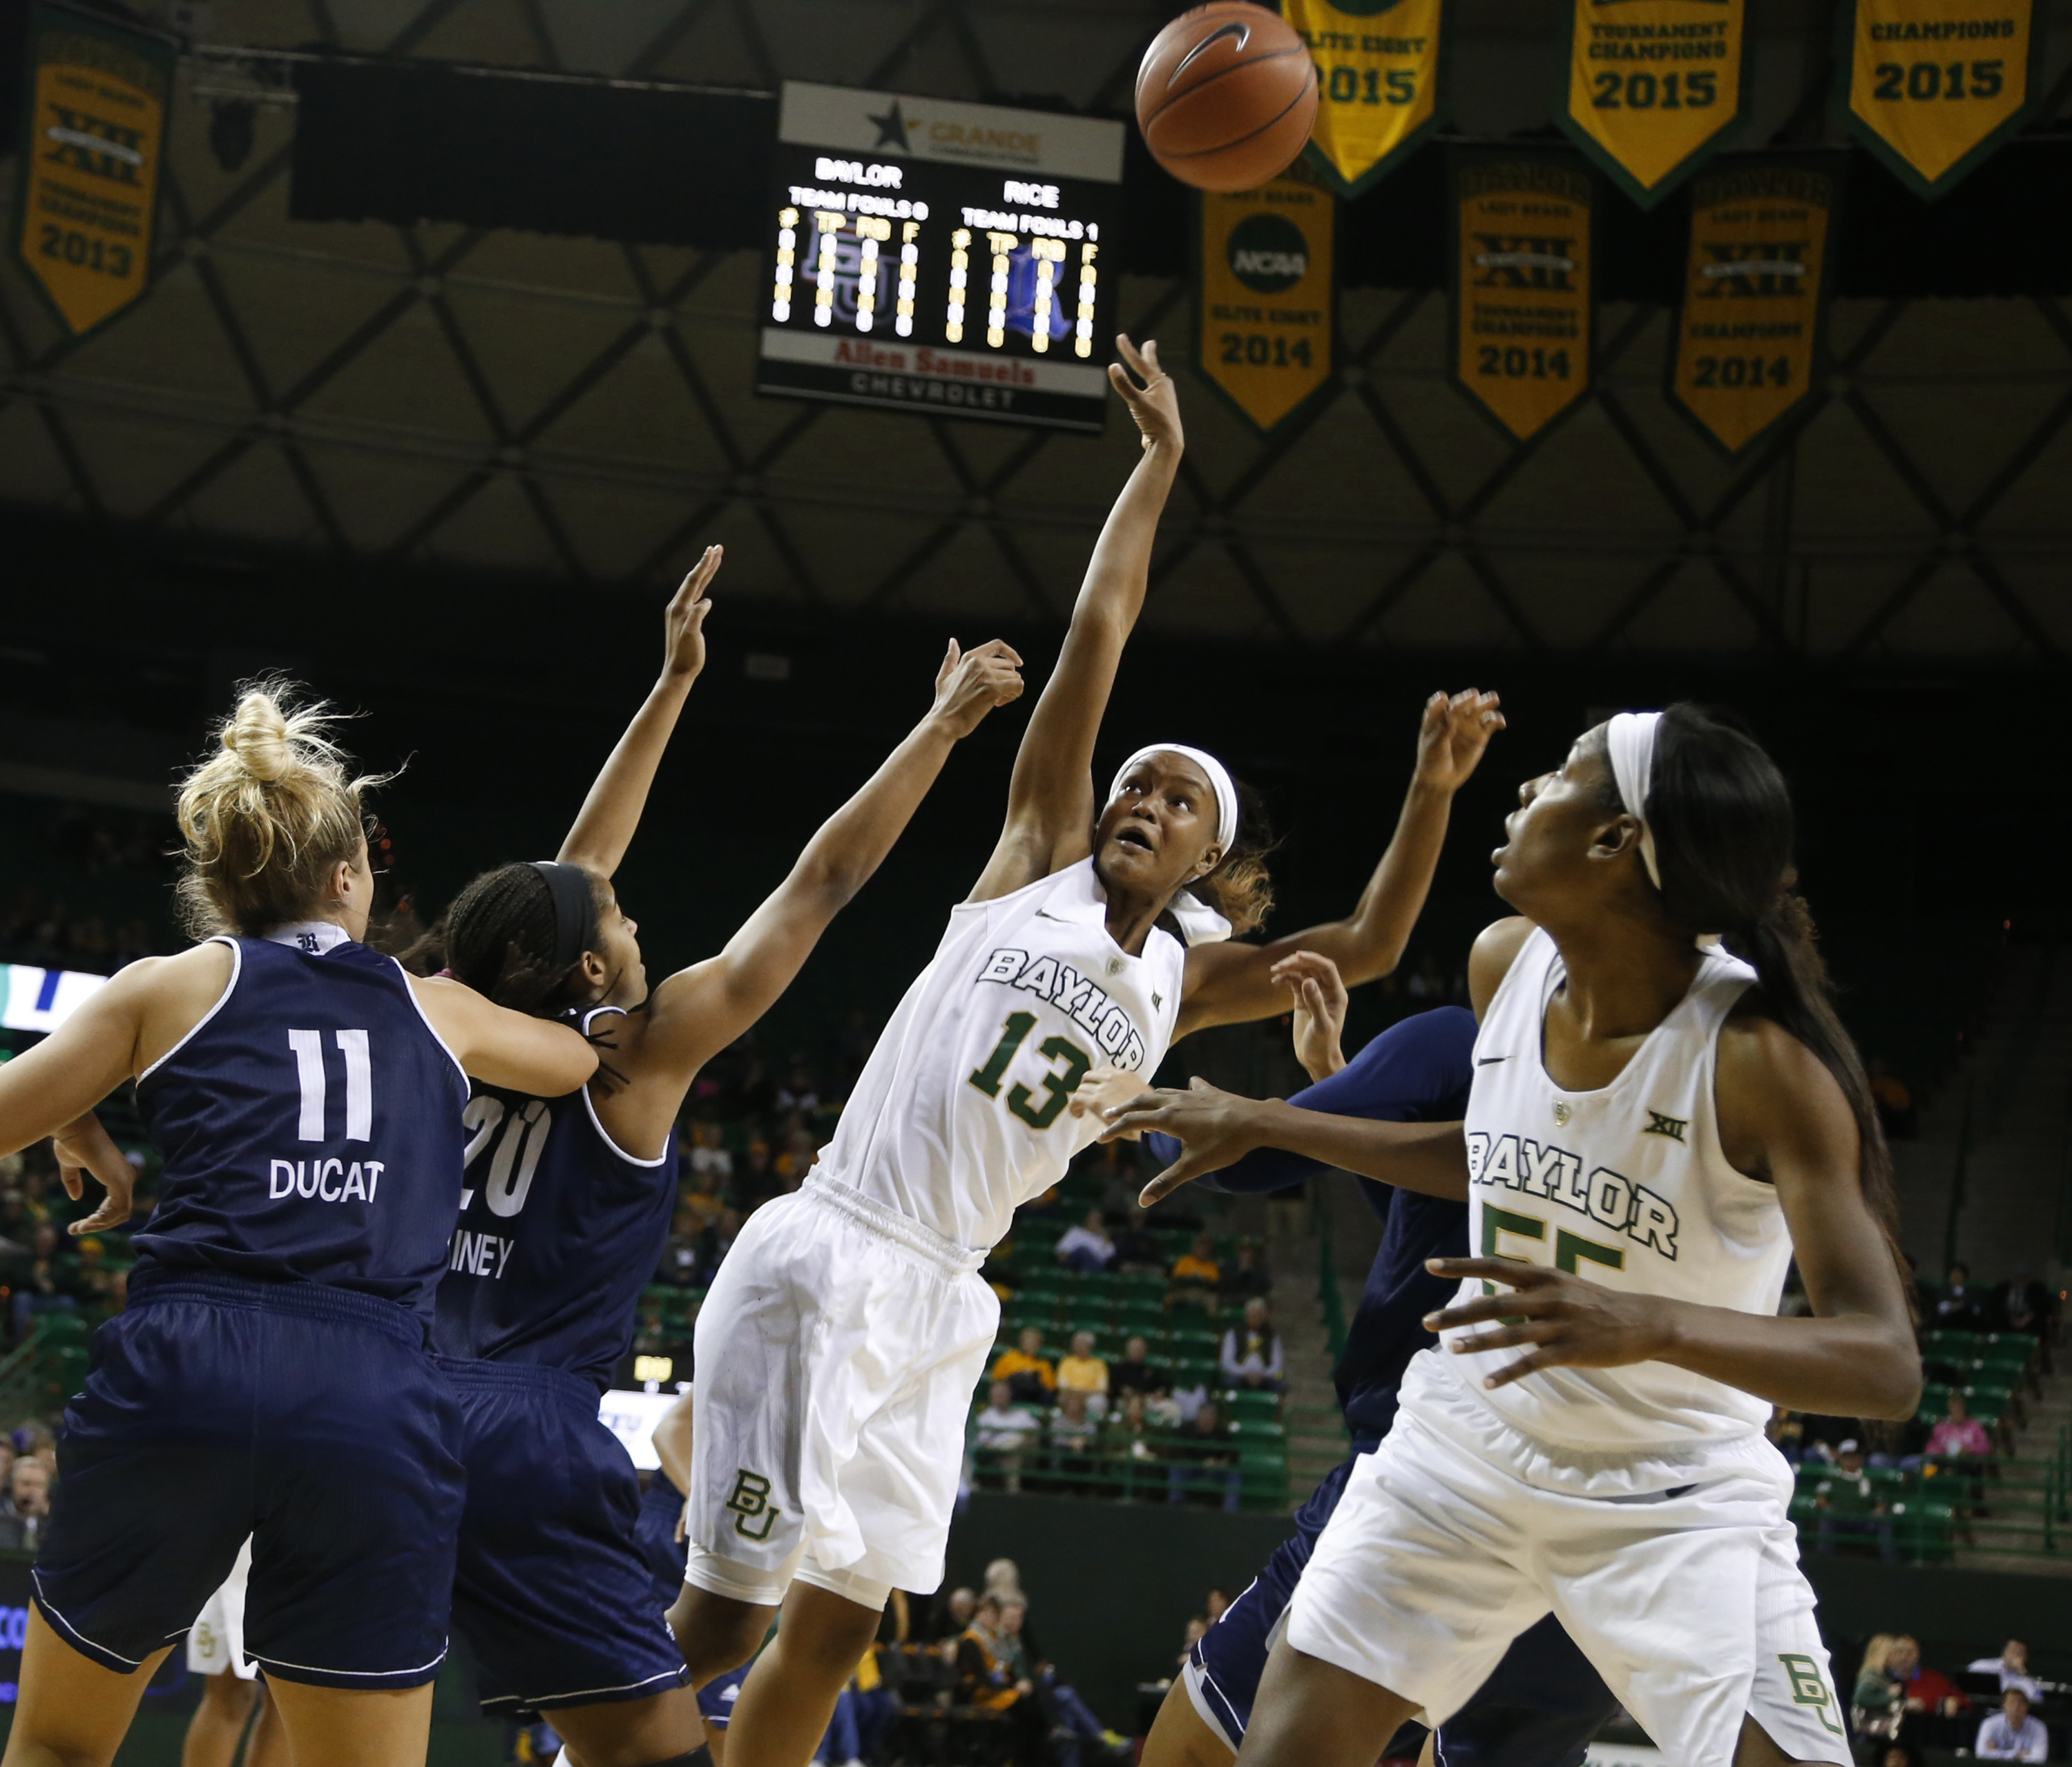 Baylor forward Nina Davis (13) attempts a shot over Rice guard Shani Rainey (20) during the first half of an NCAA college basketball game, Wednesday, Dec. 2, 2015, in Waco, Texas. Looking on are Rice forward Lexie Ducat (11) and Baylor forward/center Khad